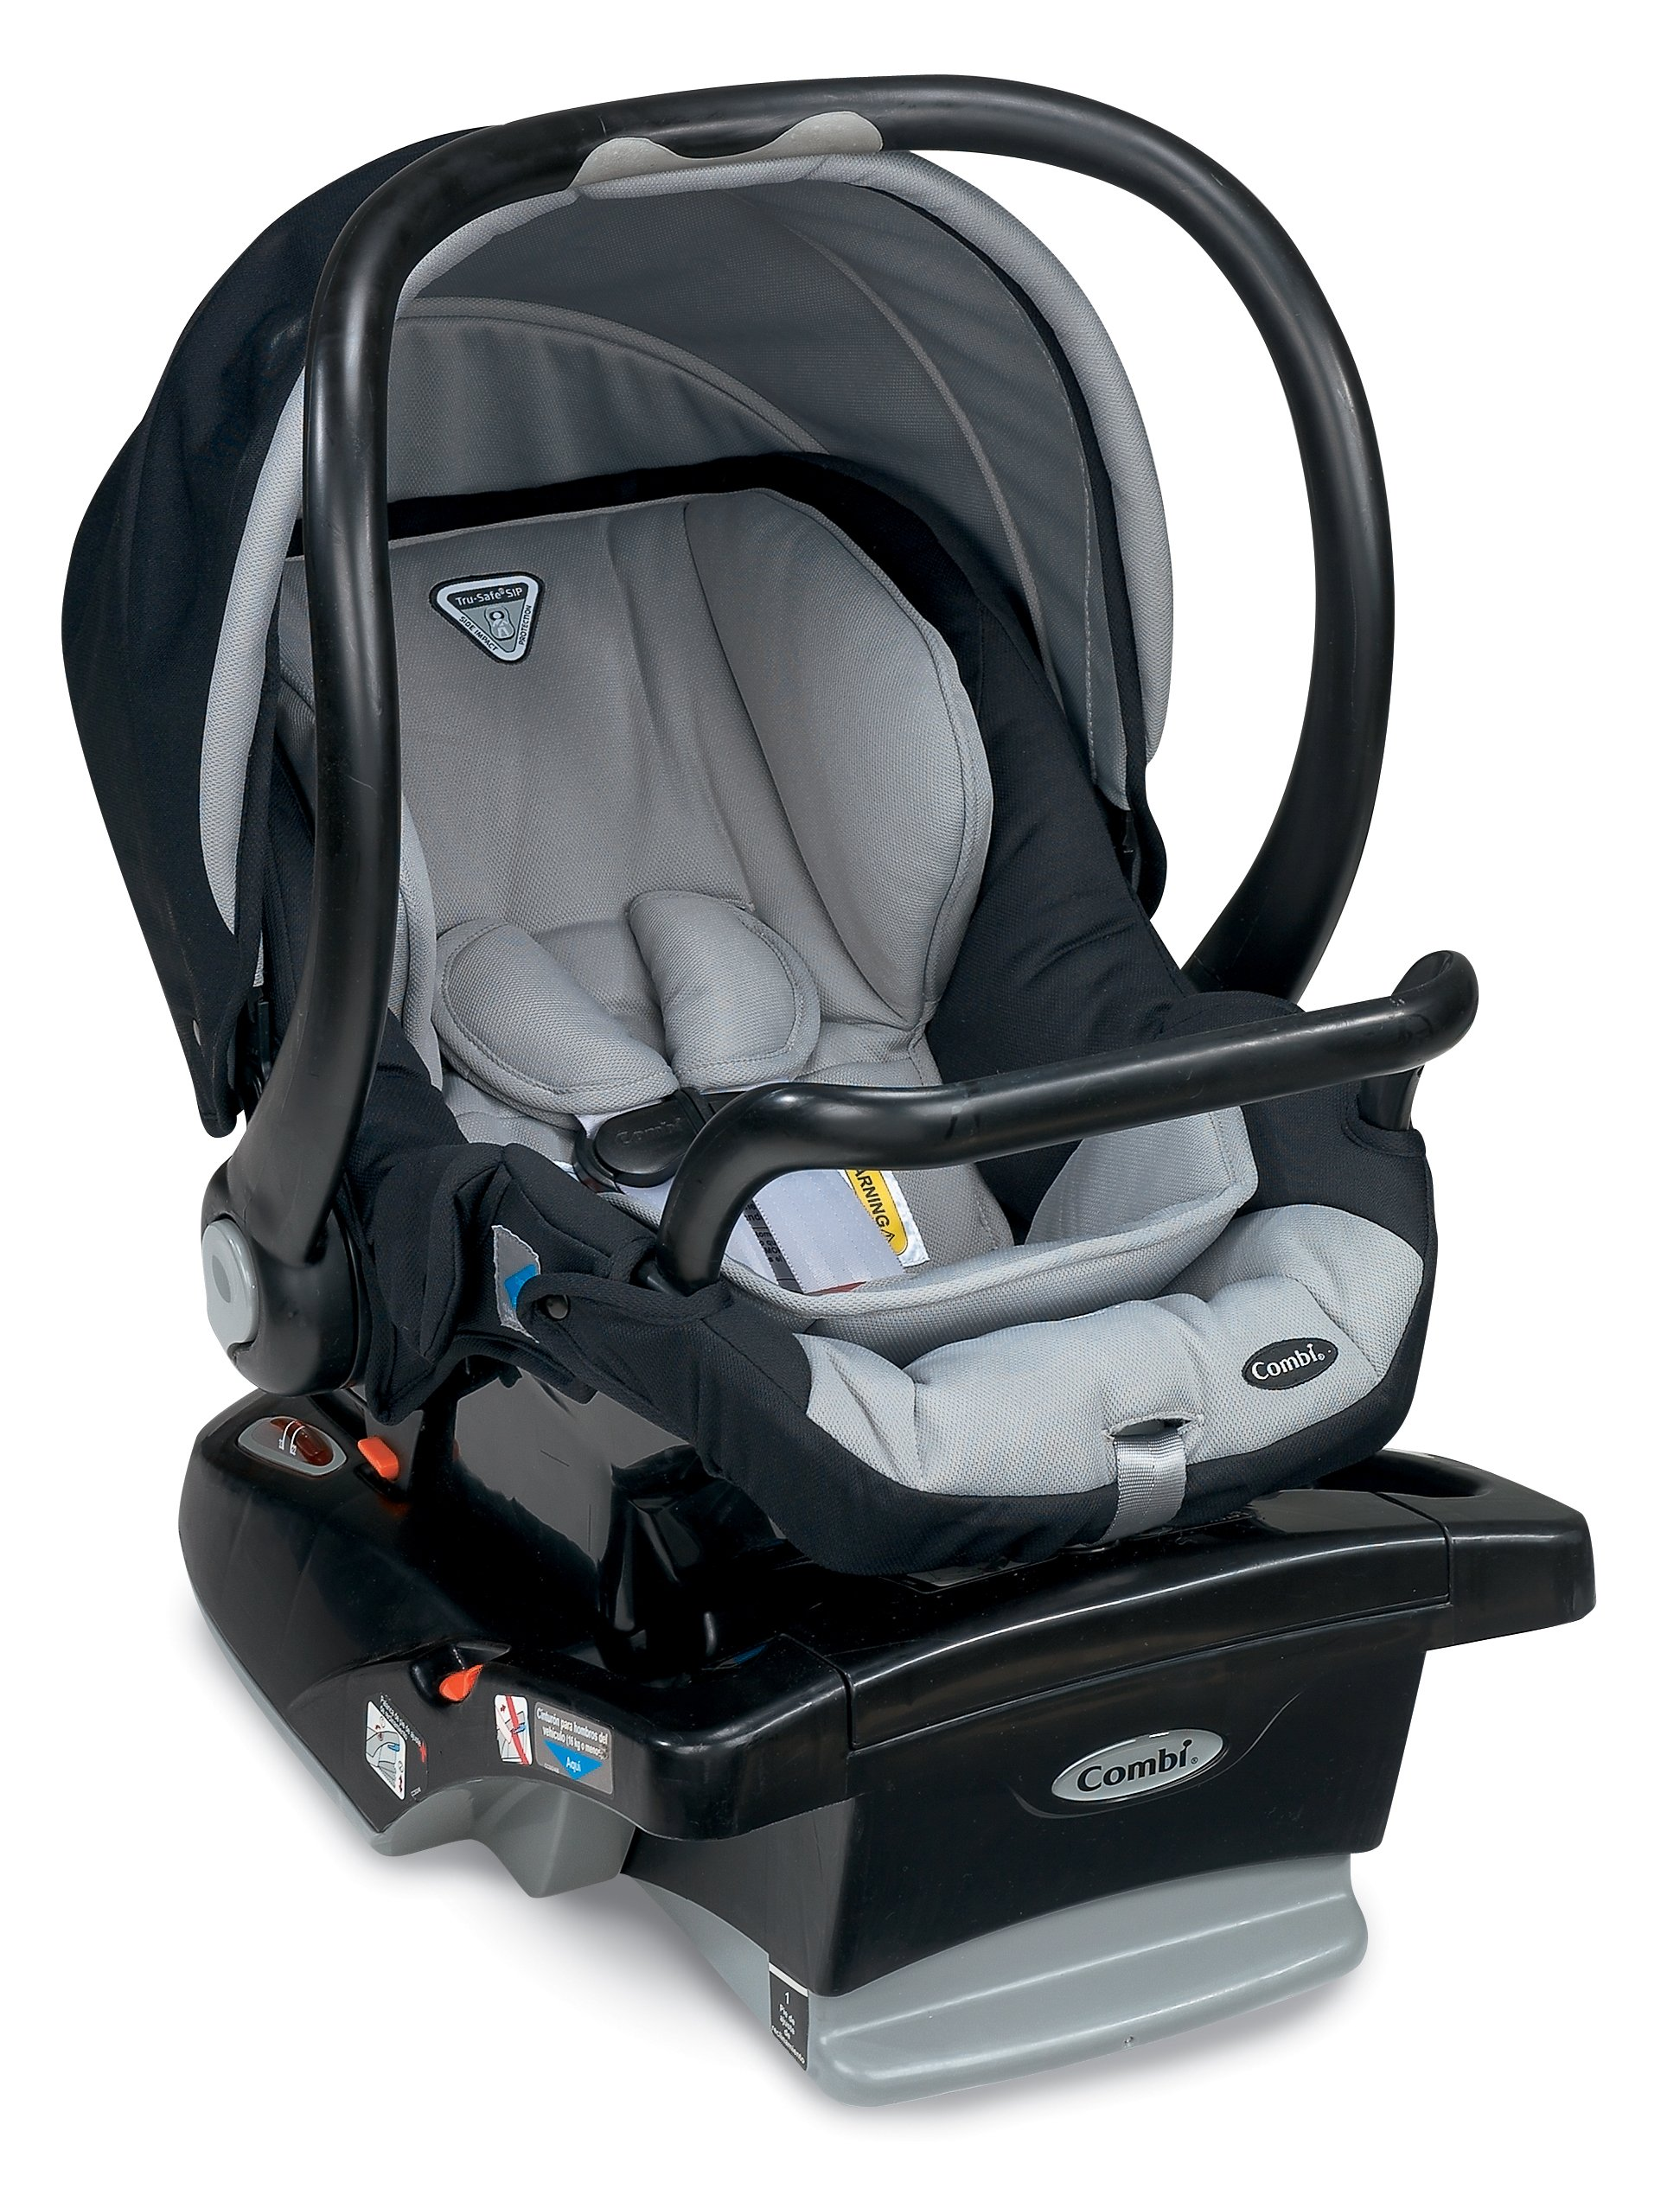 Amazon Combi Lightweight Infant Car Seat With Side Impact And Anti Rebound